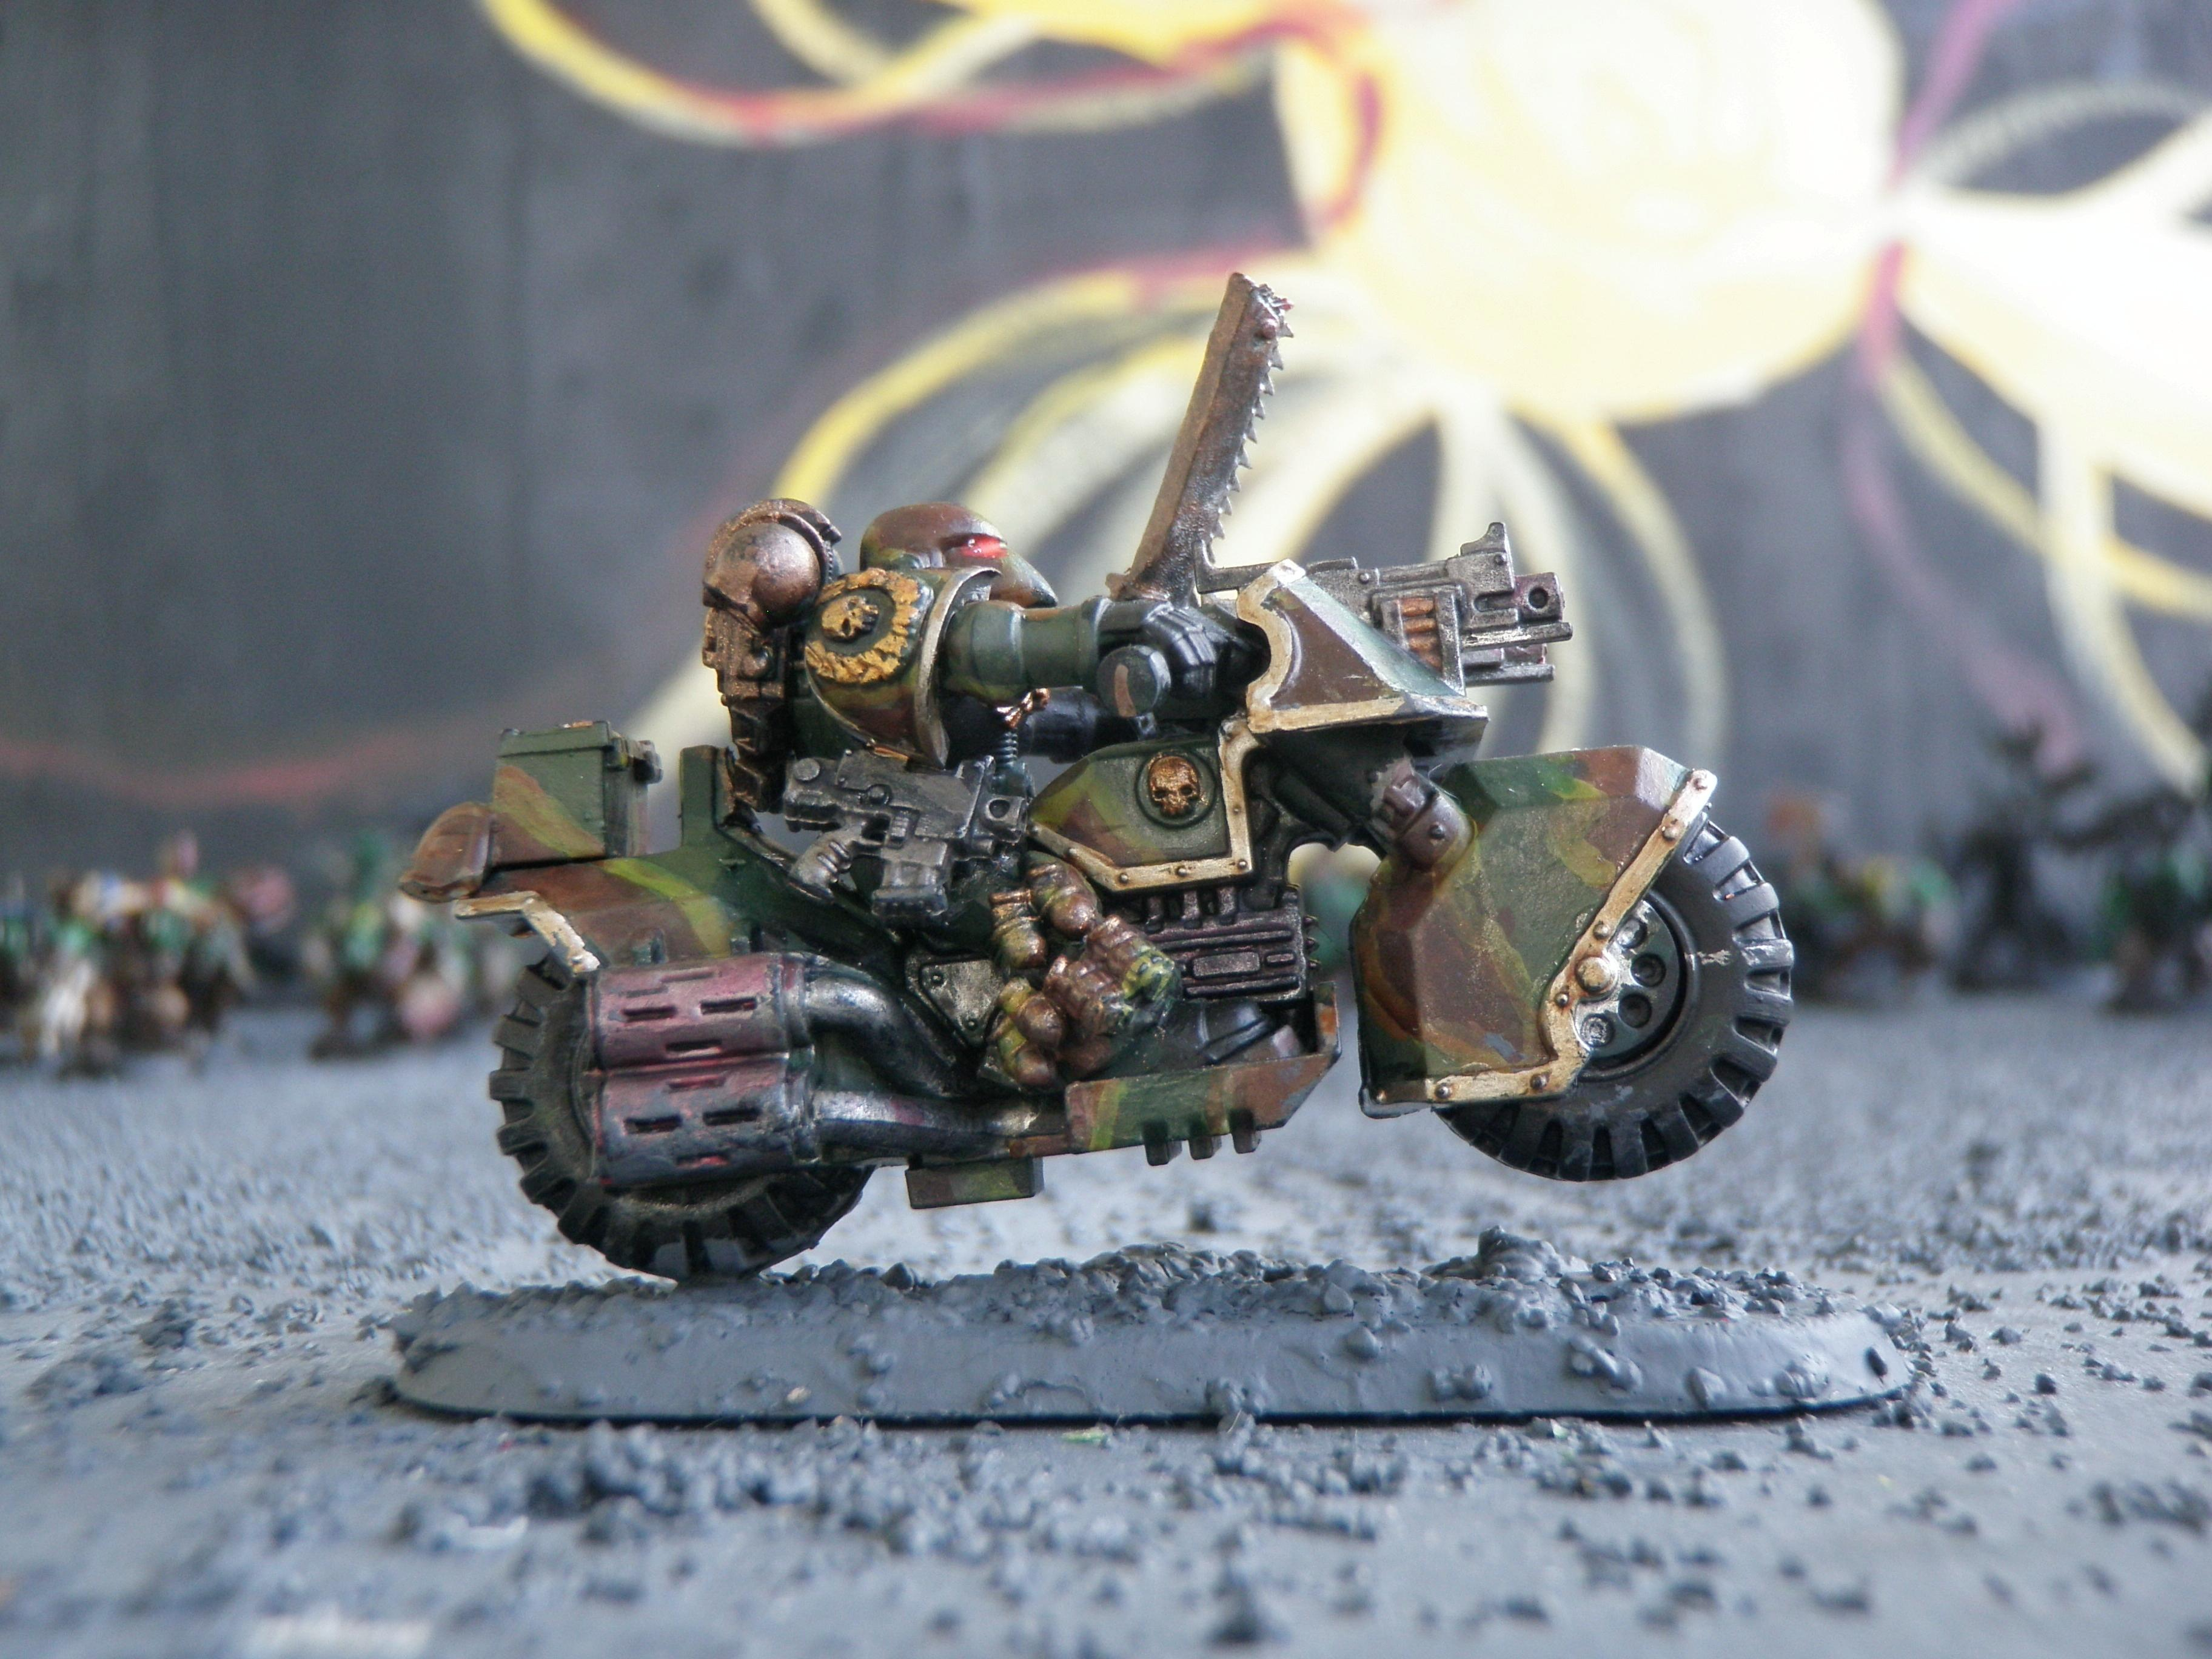 Bike, Bolt Pistol, Camouflage, Chainsword, Command Squad, Grenades, Space Marines, Veteran